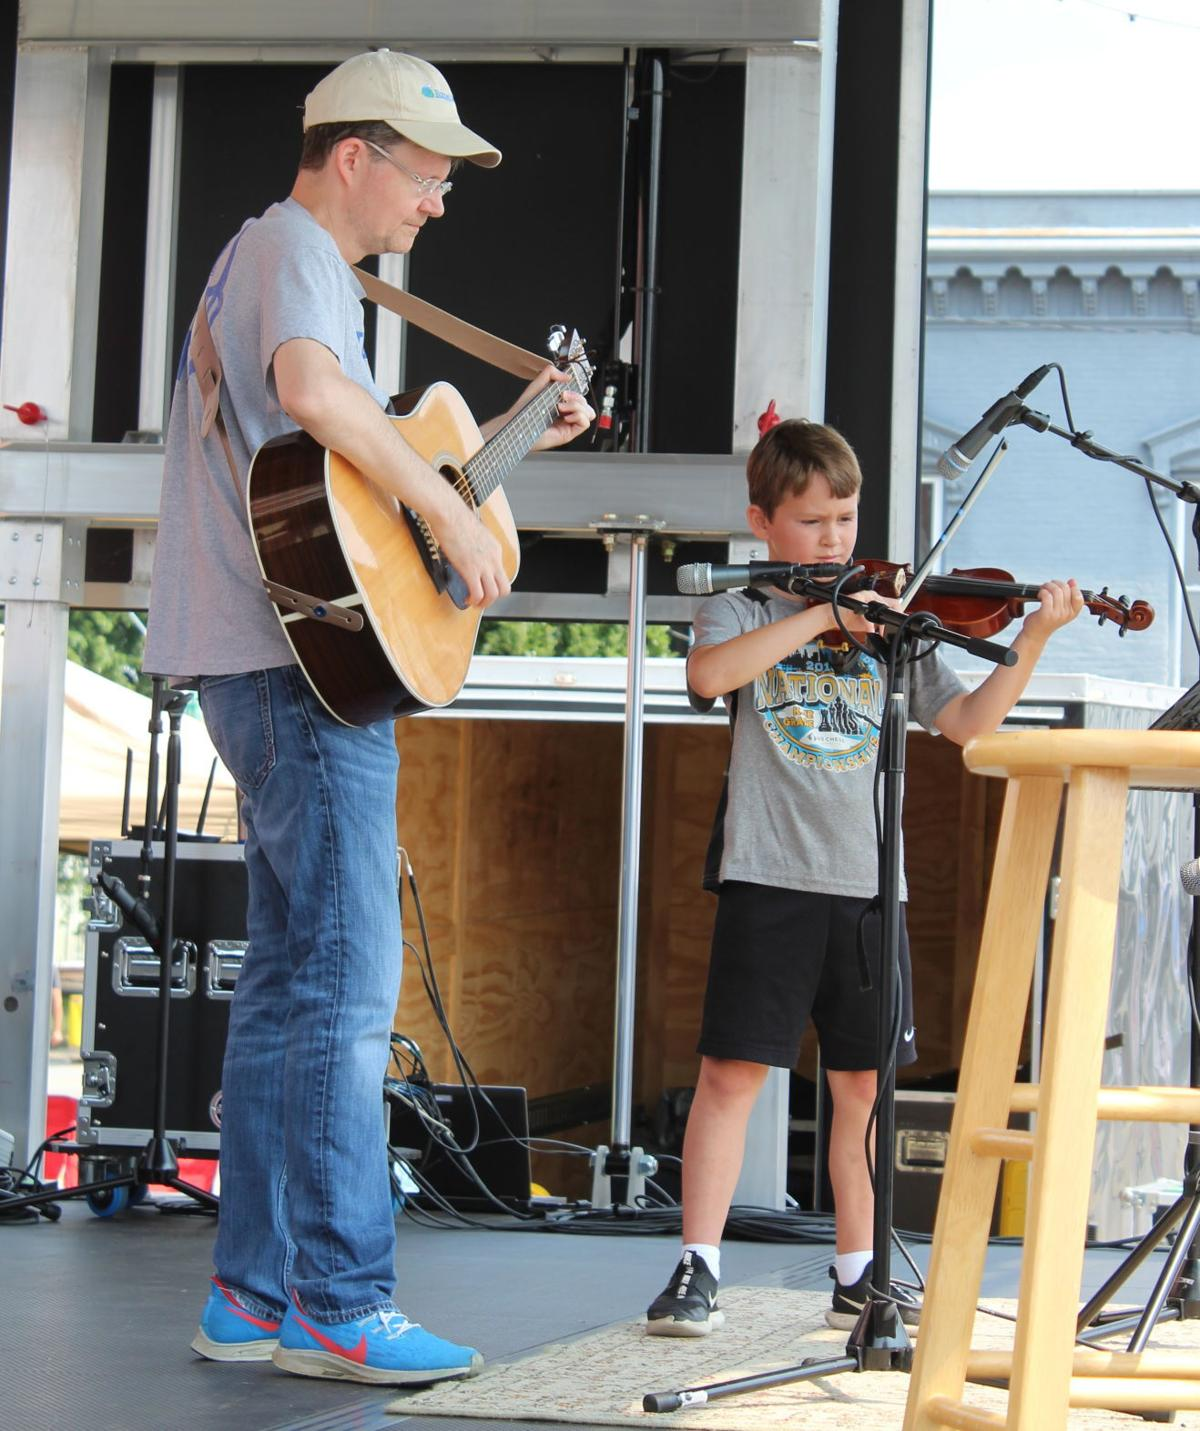 10 states represented at 10th fiddling contest 2